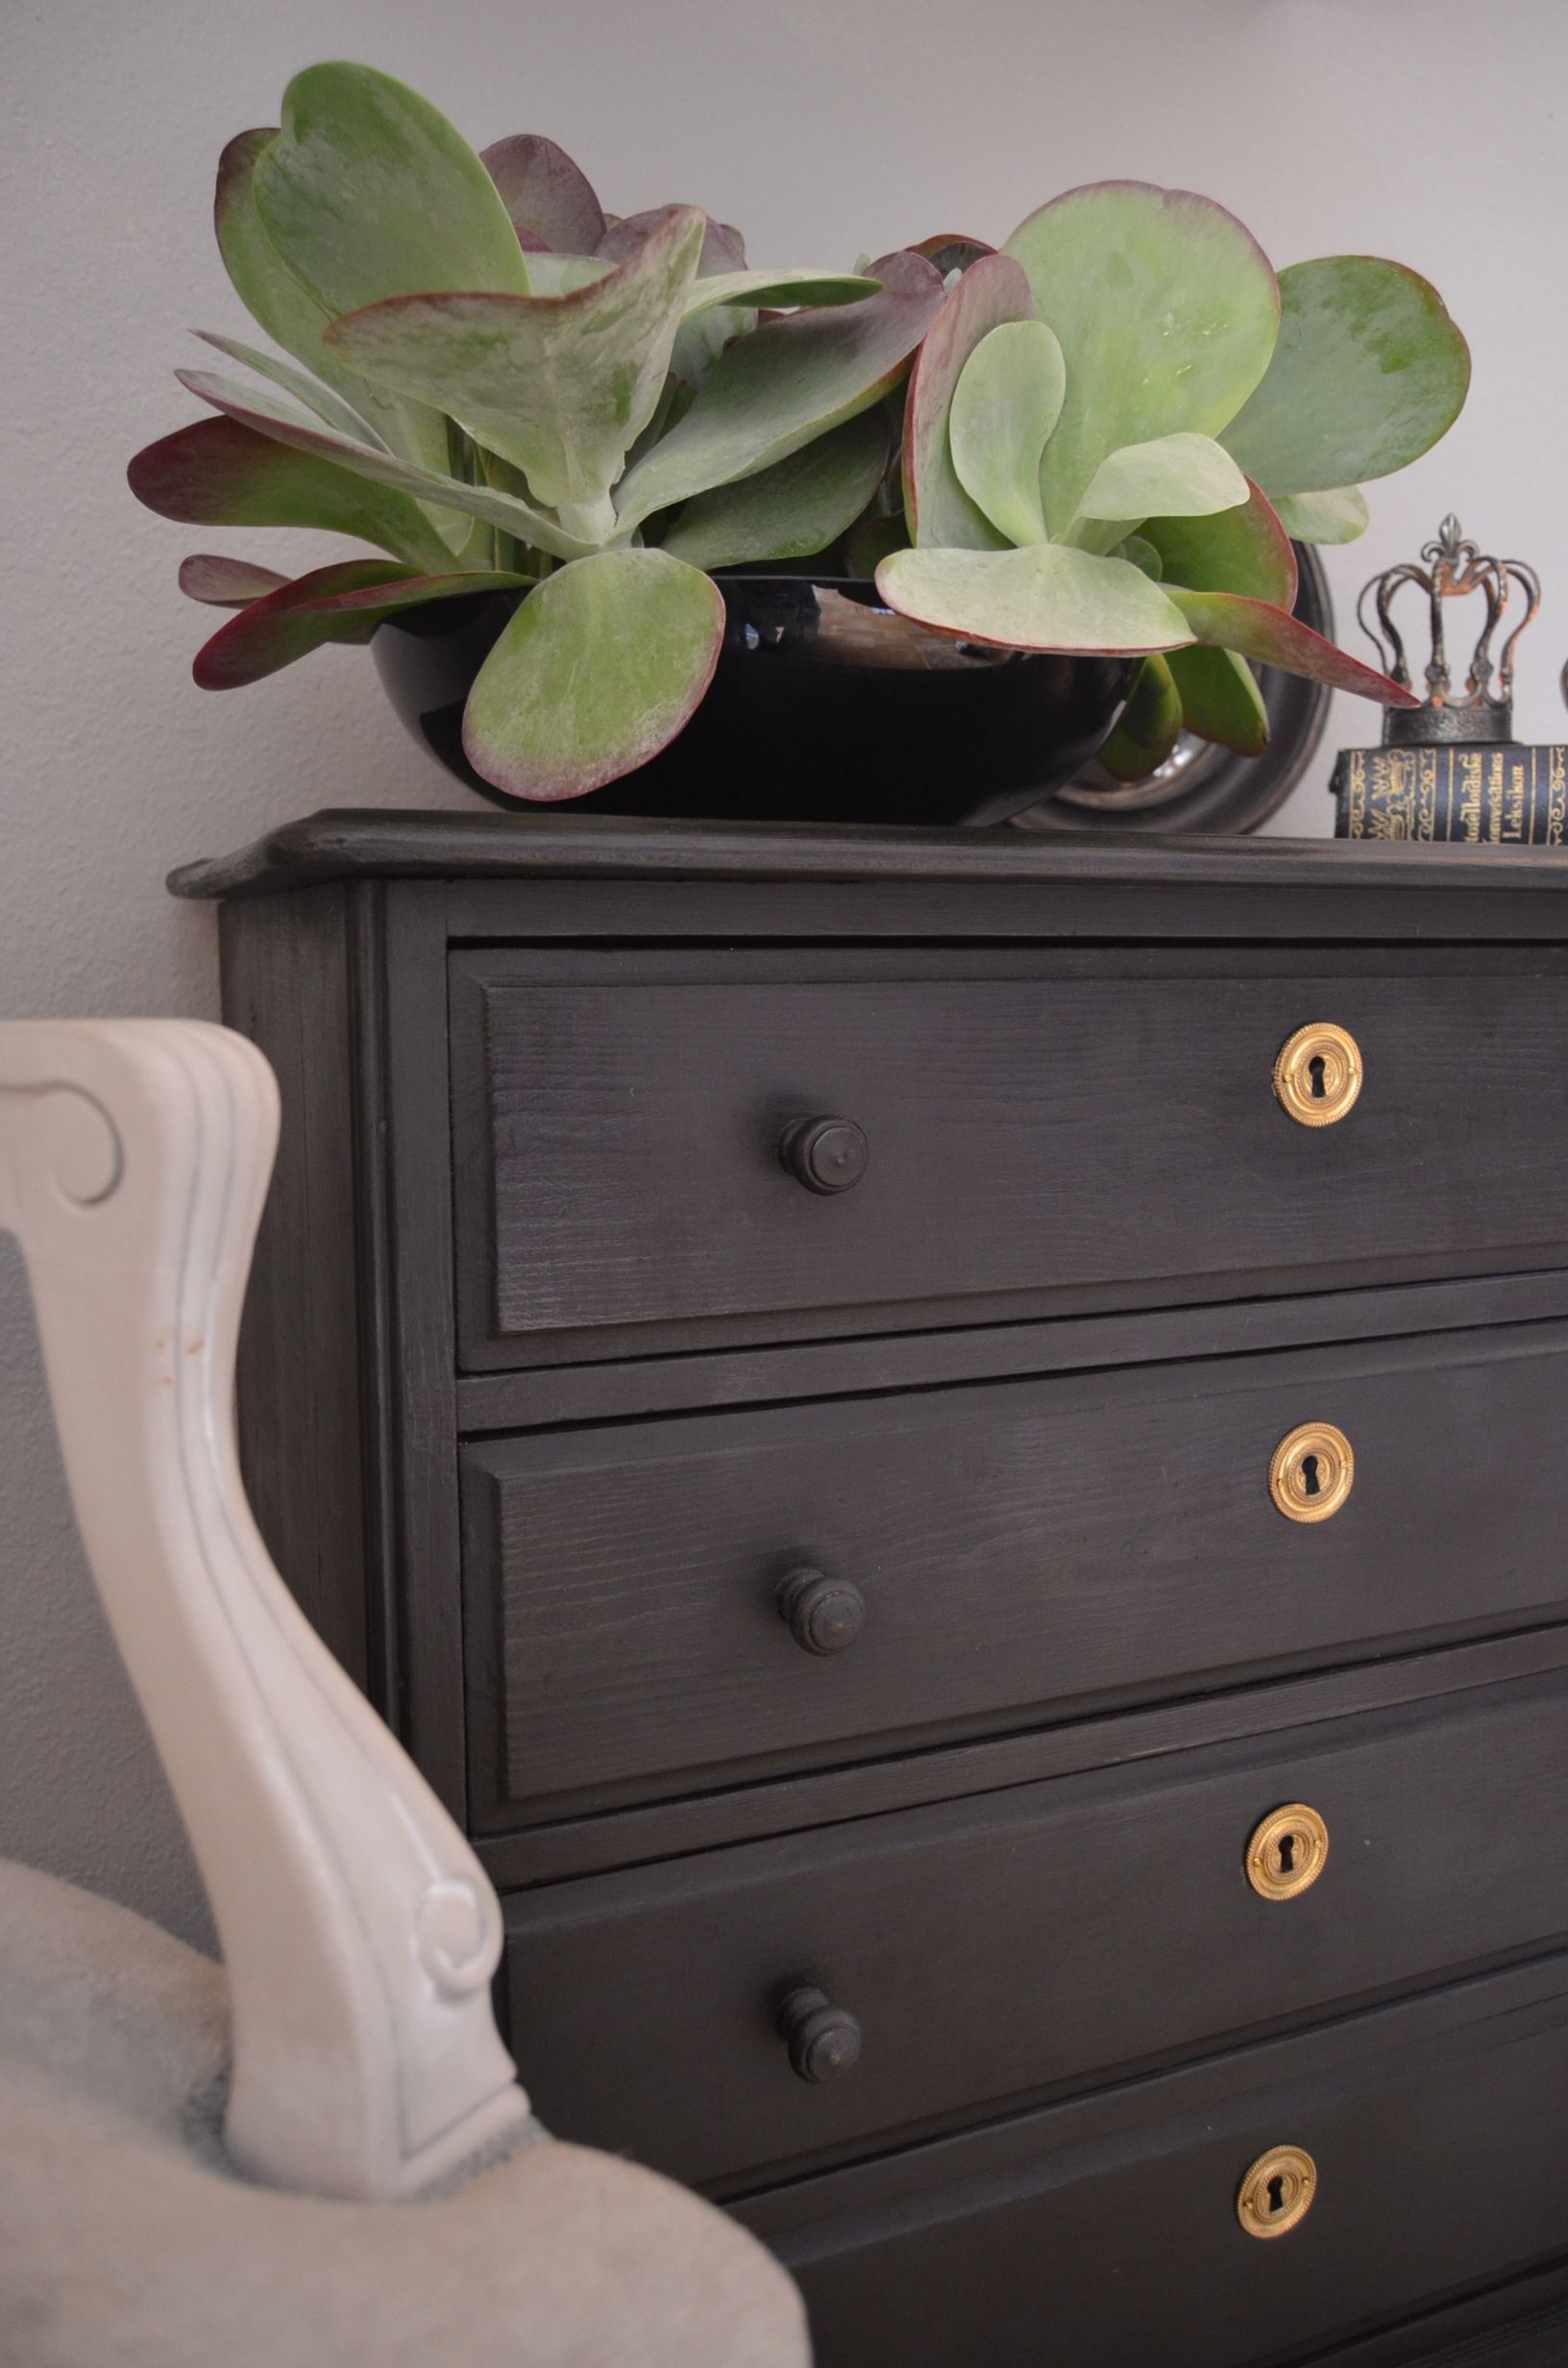 Diy furniture painting ideas - Annie Sloan Chalk Paint For A Blackboard That S Not Black This Brand